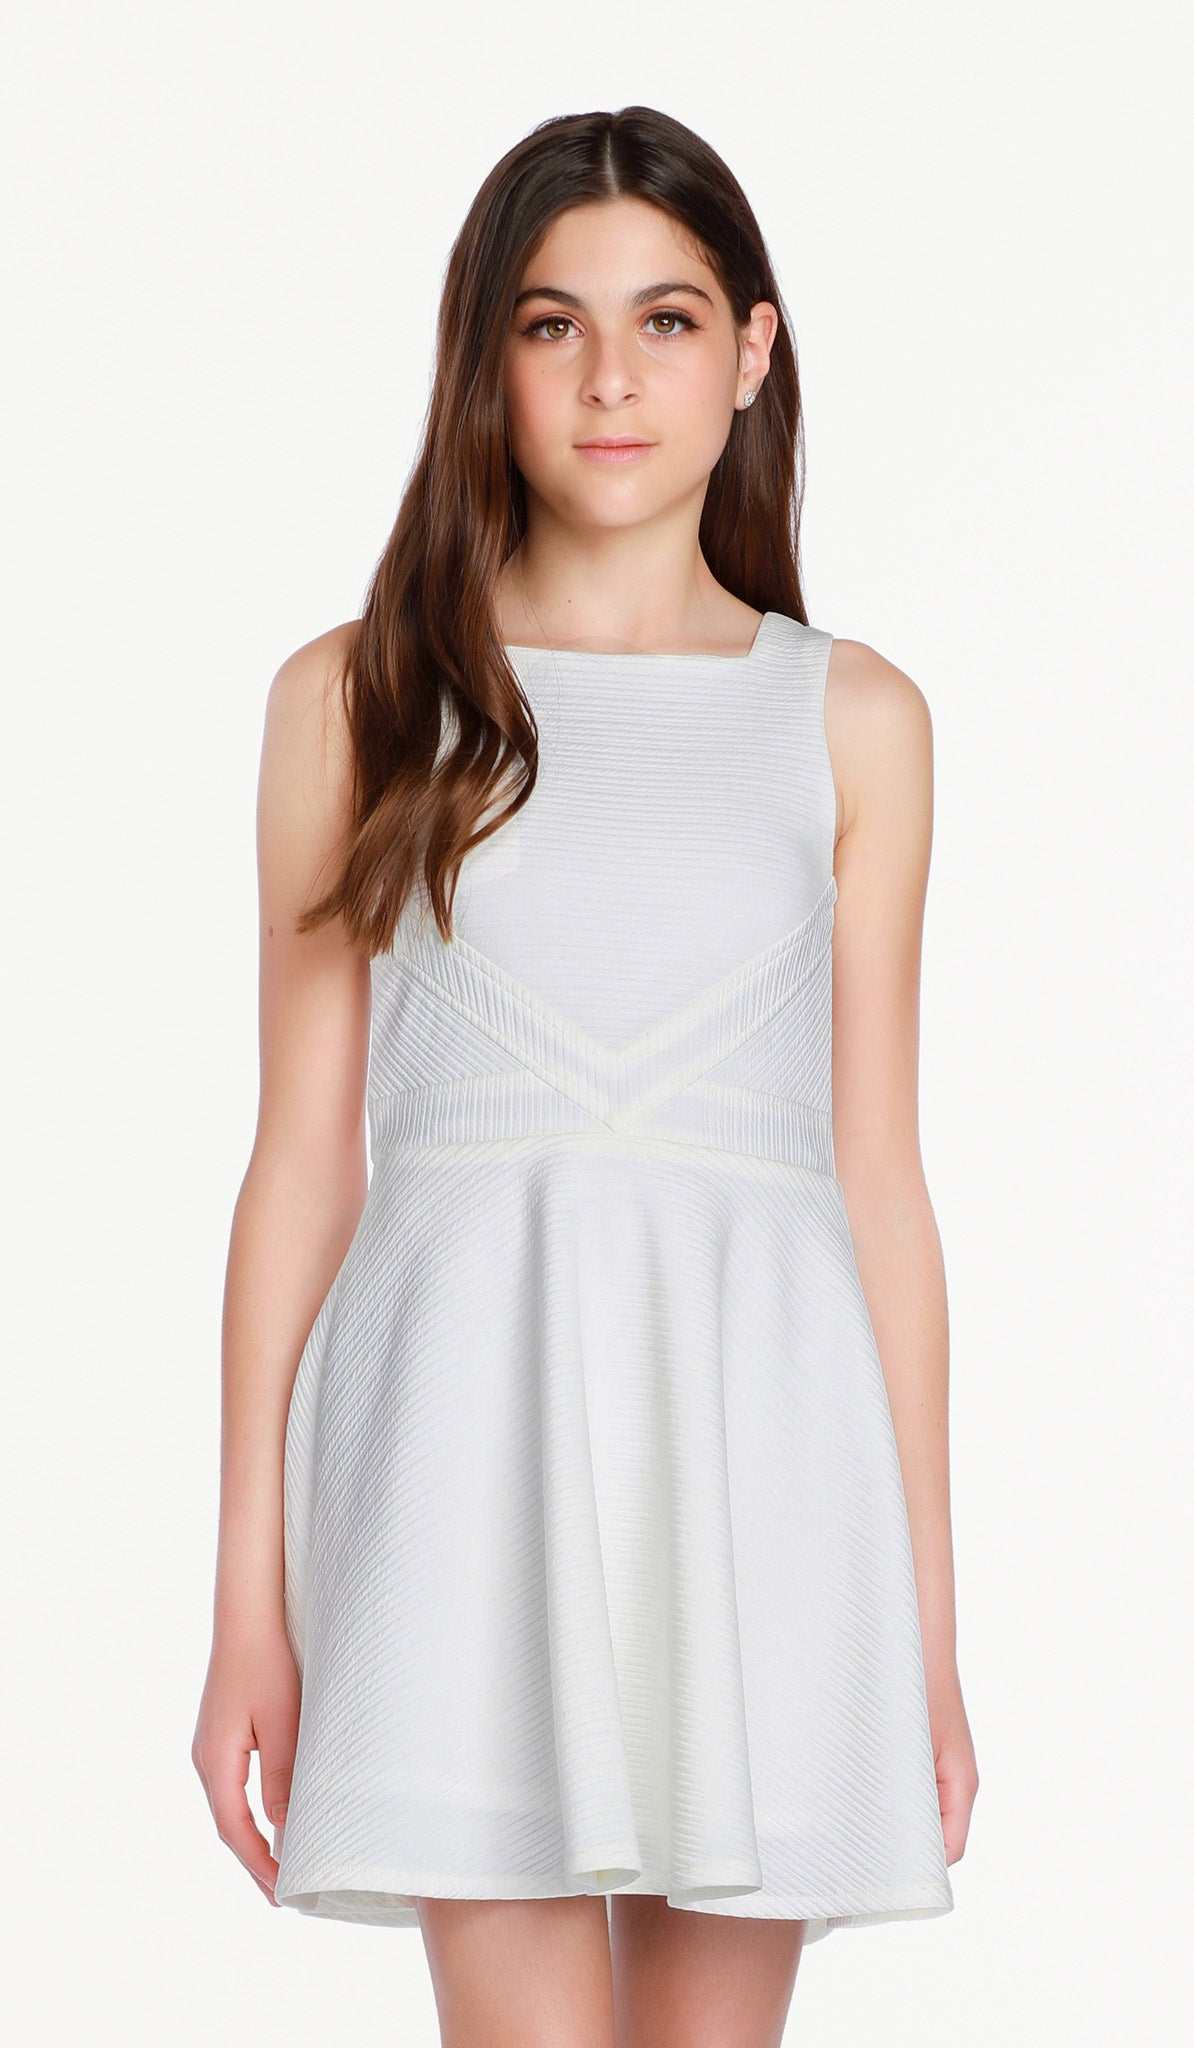 The Sally Miller Carrie Dress - Ivory textured stretch knit dress fully lined